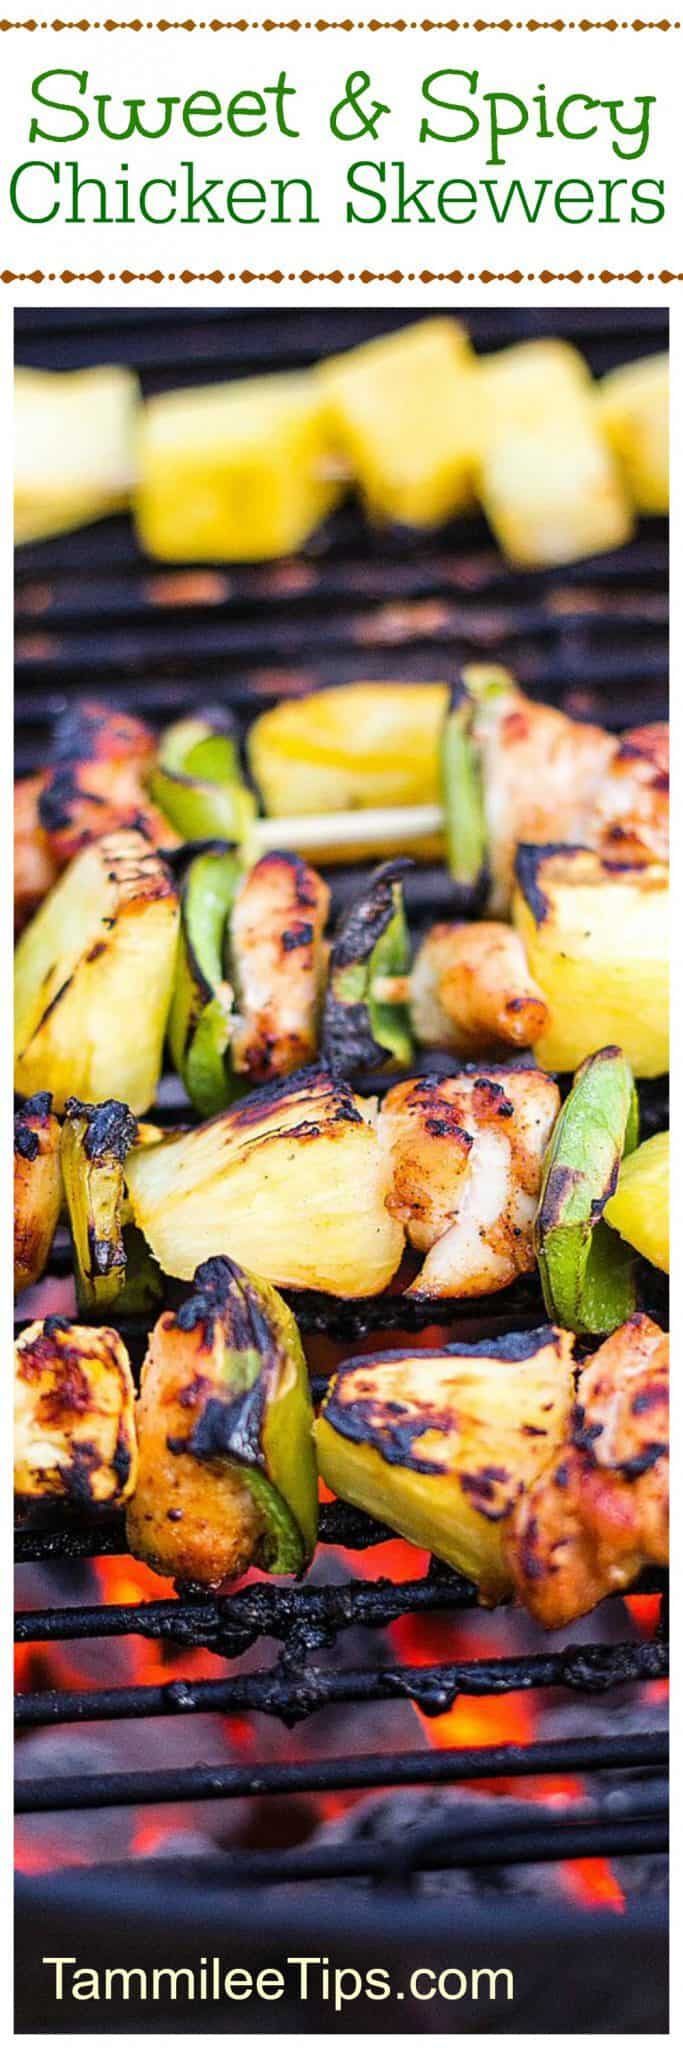 Grilled Sweet and Spicy Chicken Skewers Recipe that is so easy to make! Great for family dinners, bbq, picnics, and more! Pineapple, peppers, and chicken grilled together to make a perfect meal.